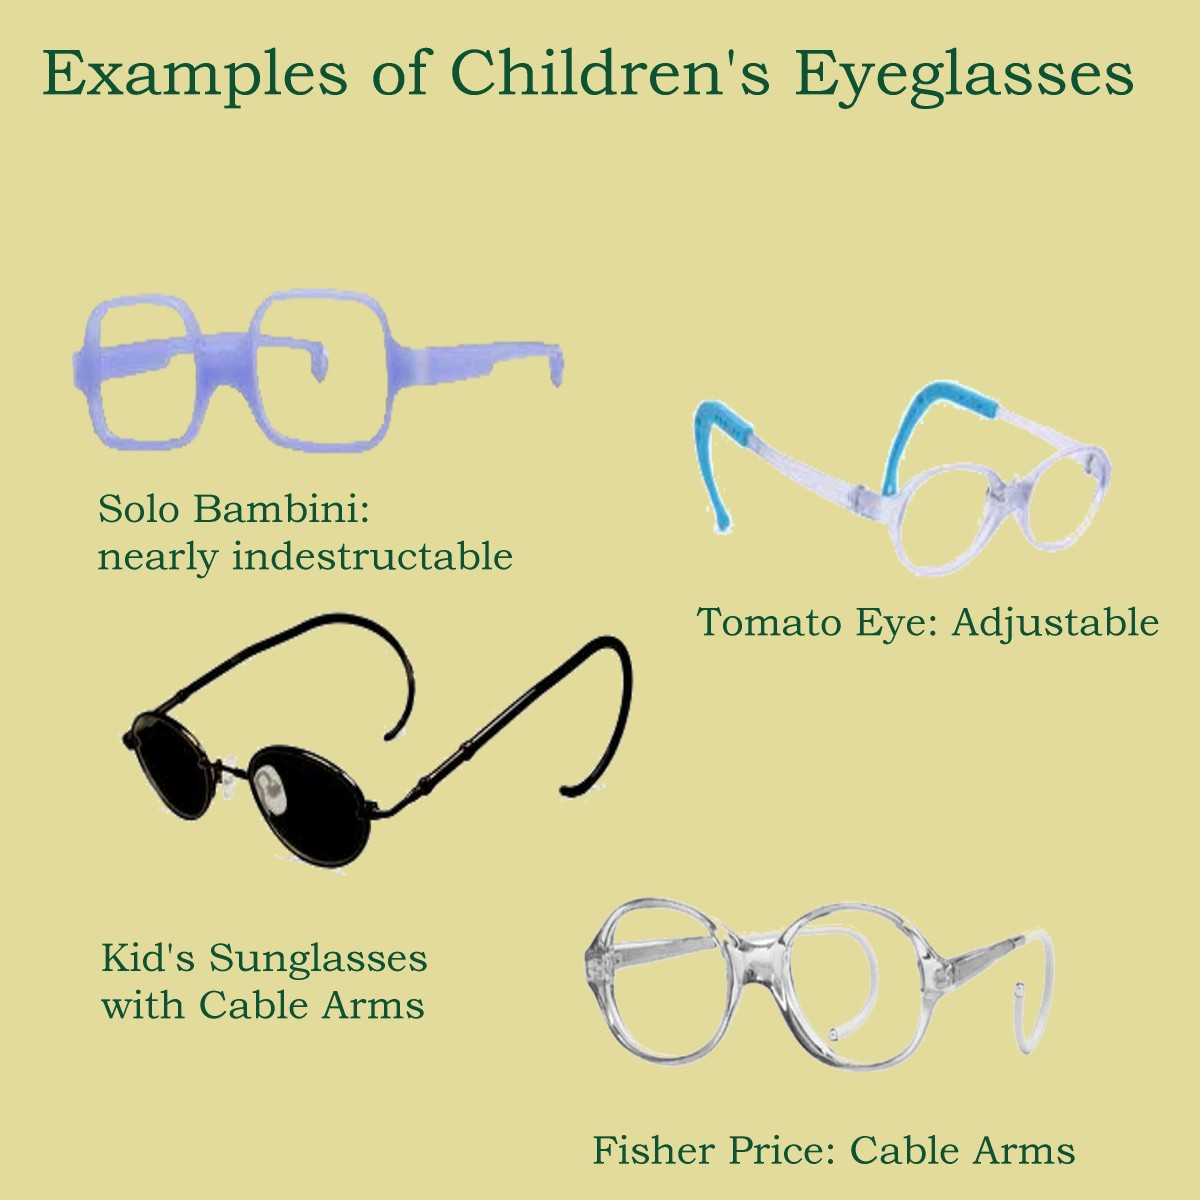 A few examples of kid's eyeglasses.